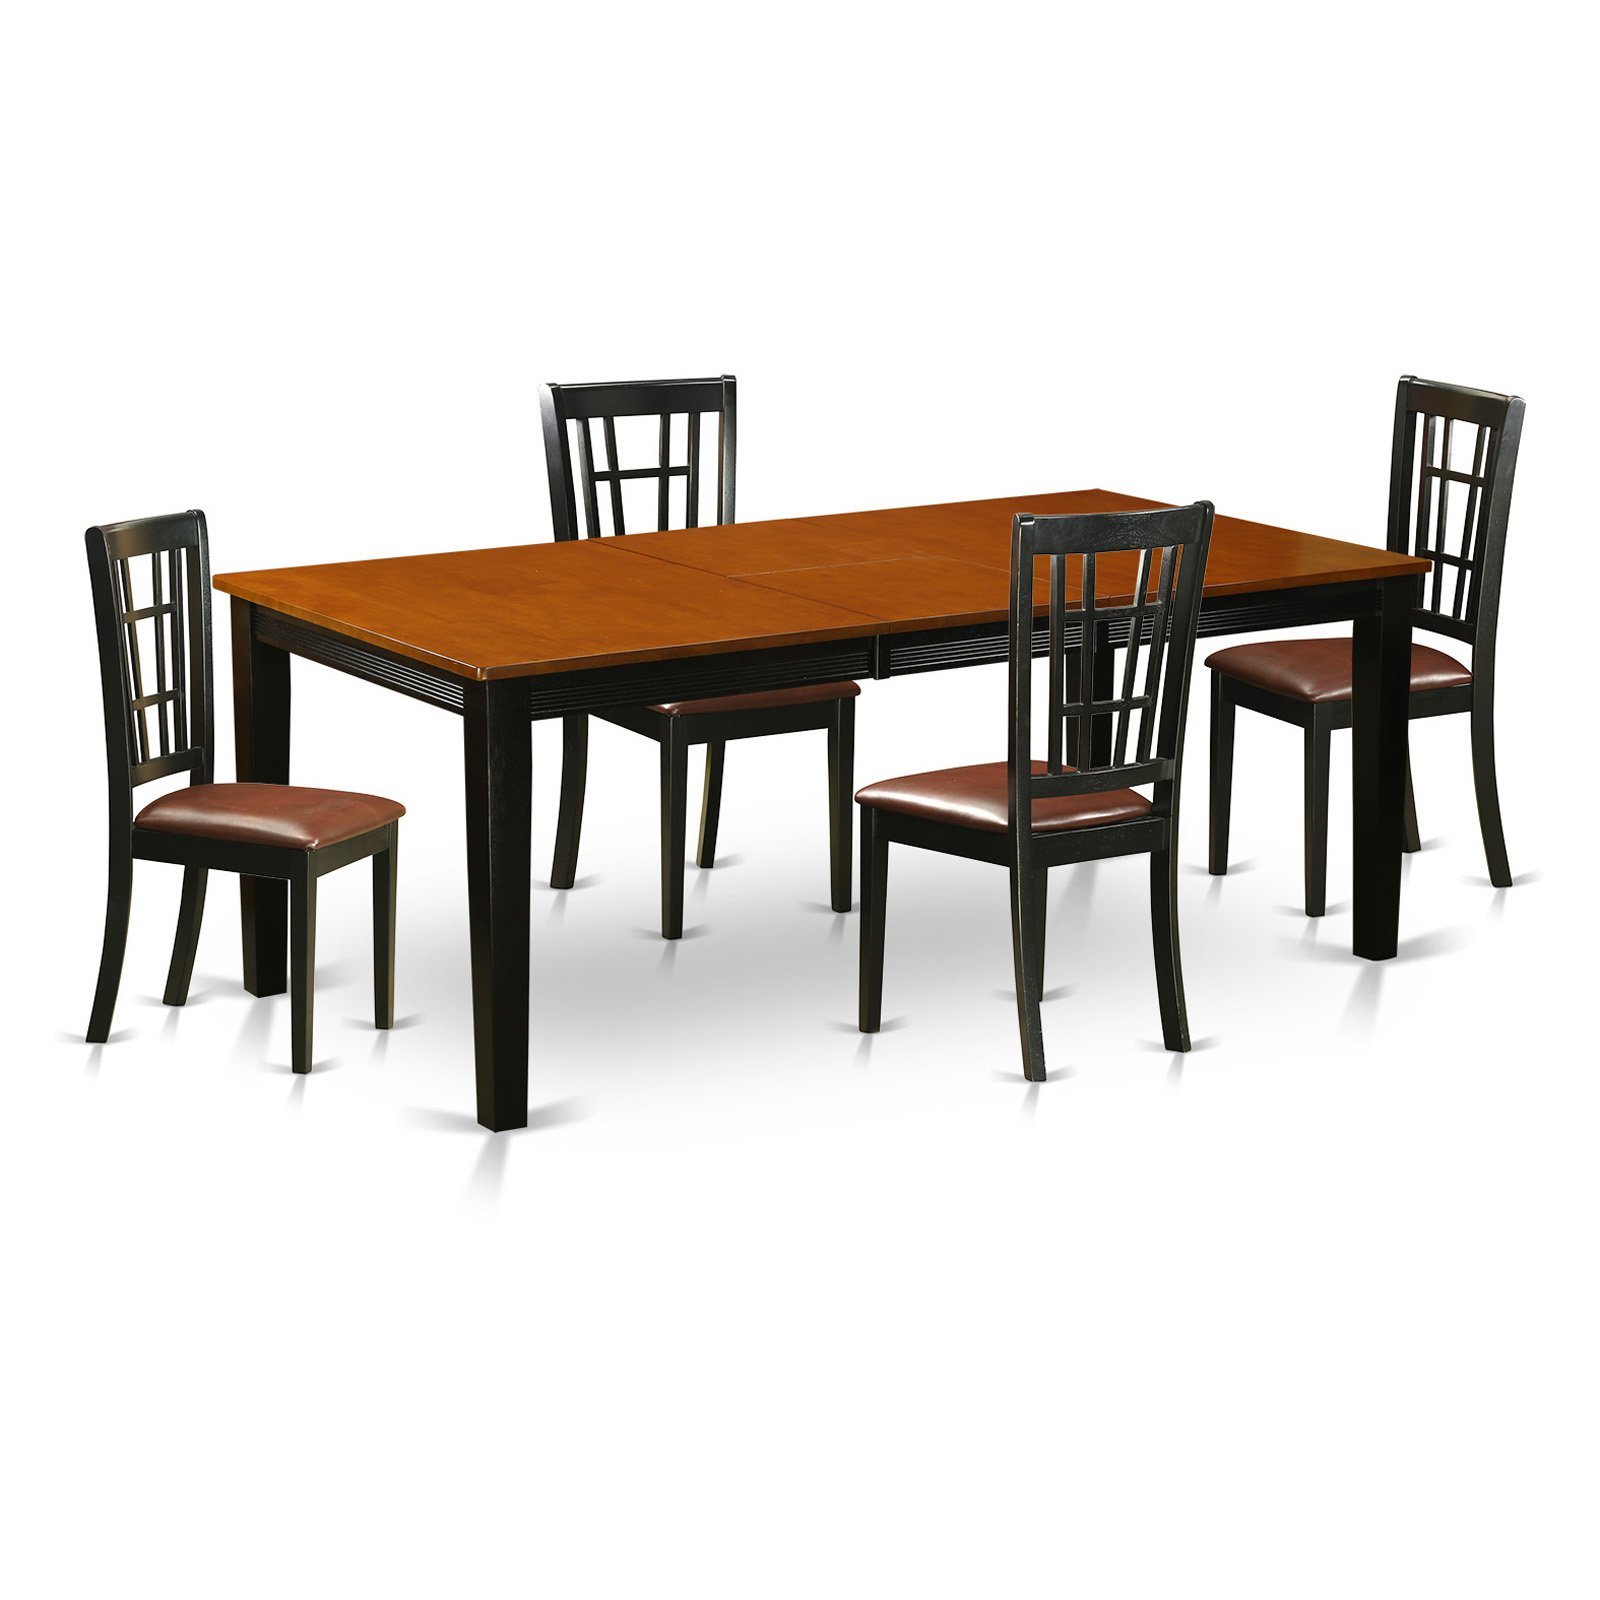 East West Furniture Quincy 5-Piece Windowpane Dining Table Set